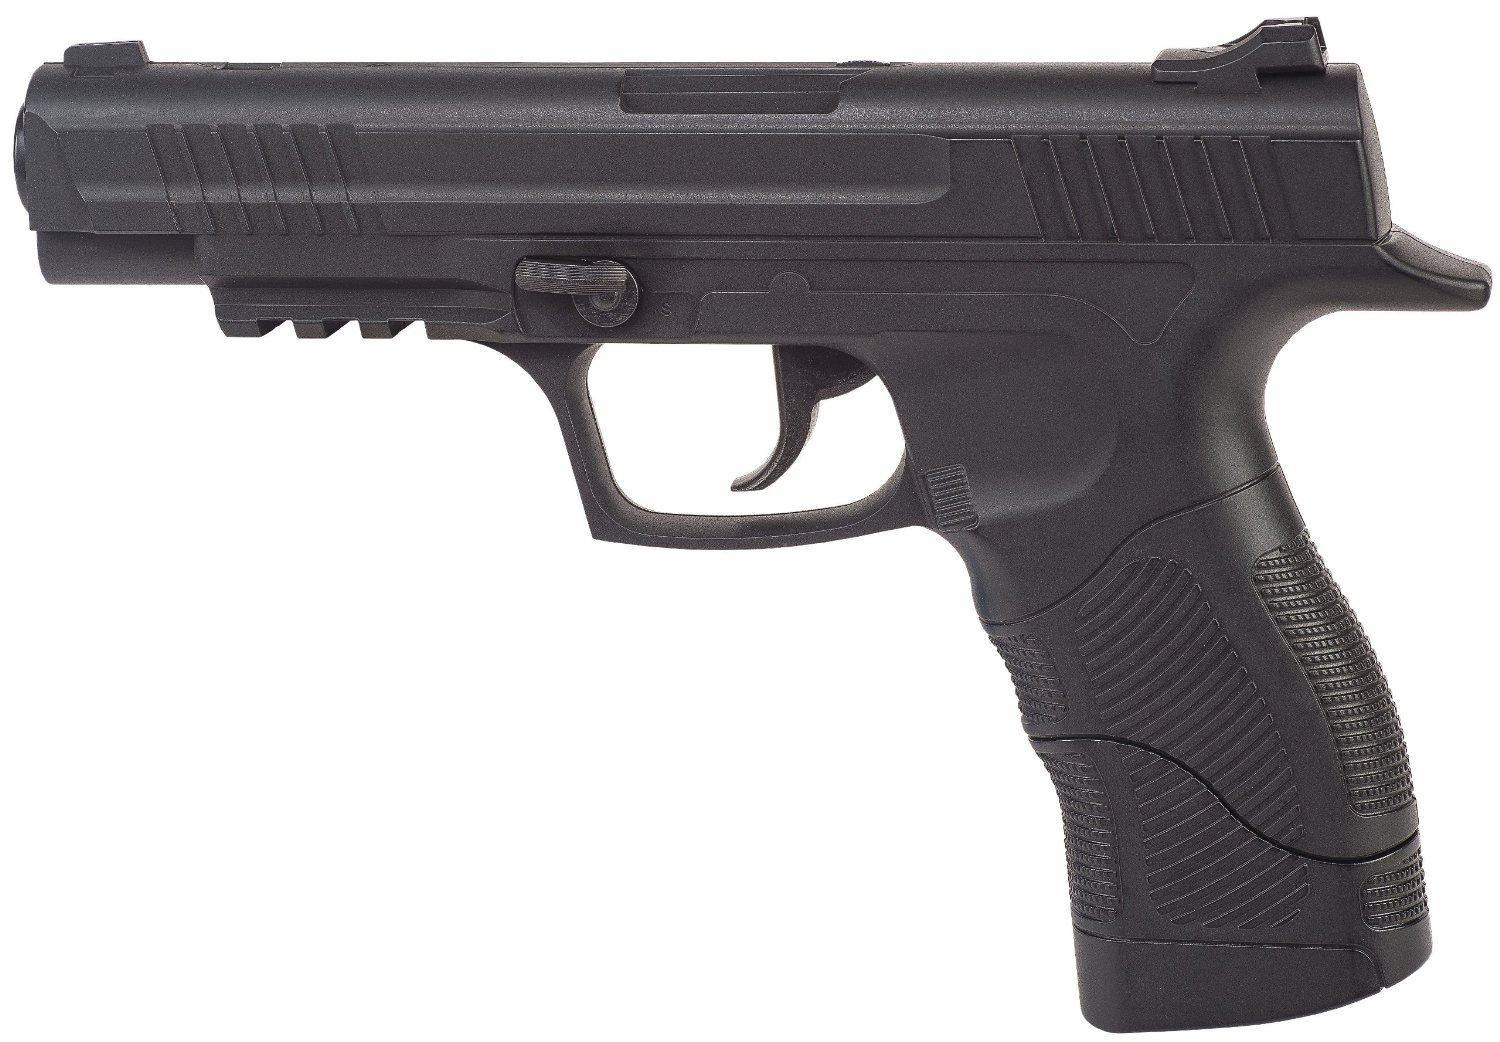 Daisy 980415-242 Hunting Air Pistol Review